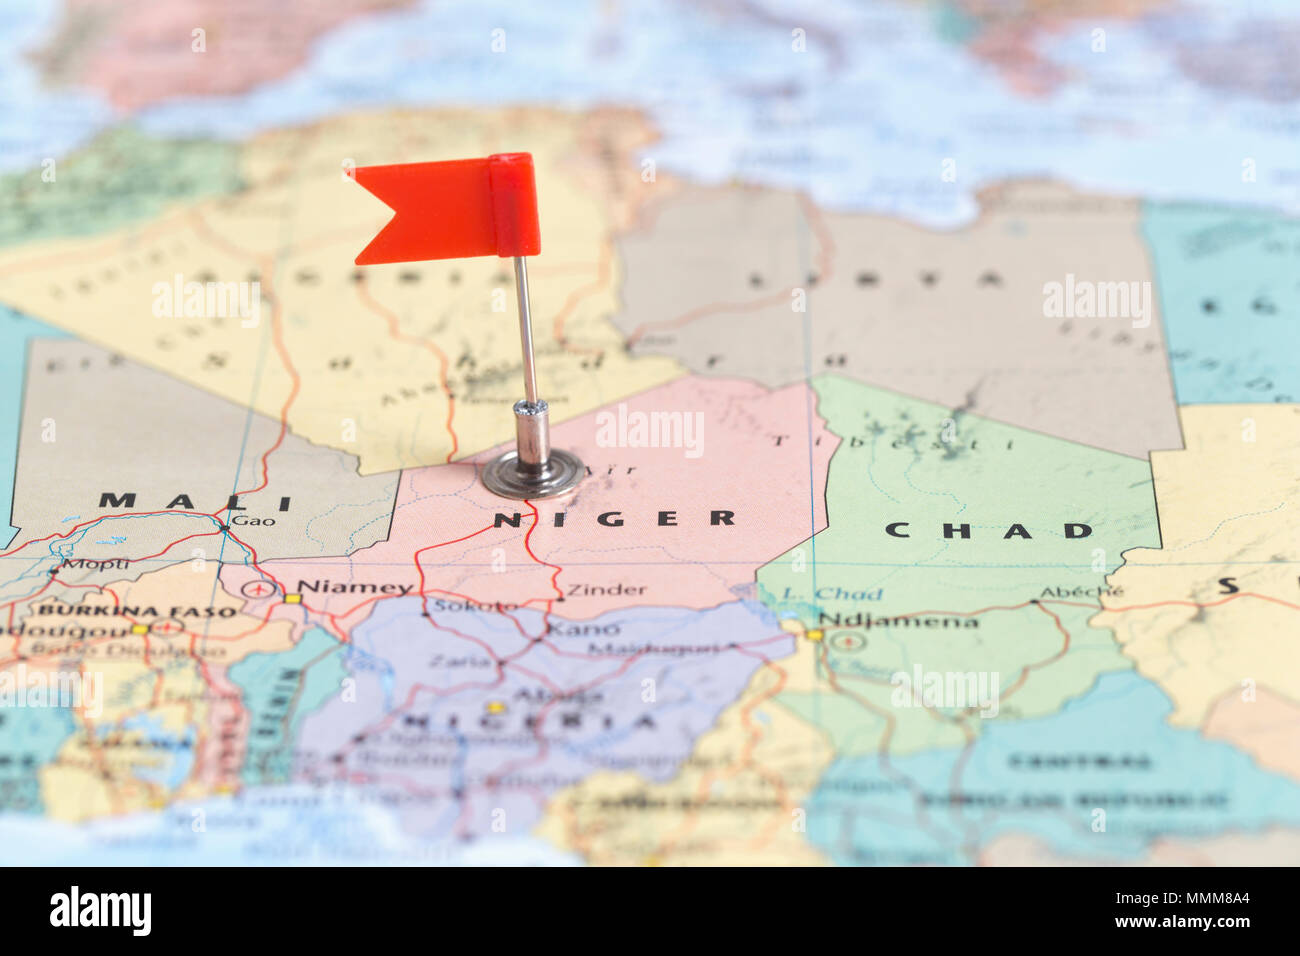 Small Red Flag Marking The African Country Of Niger On A World Map